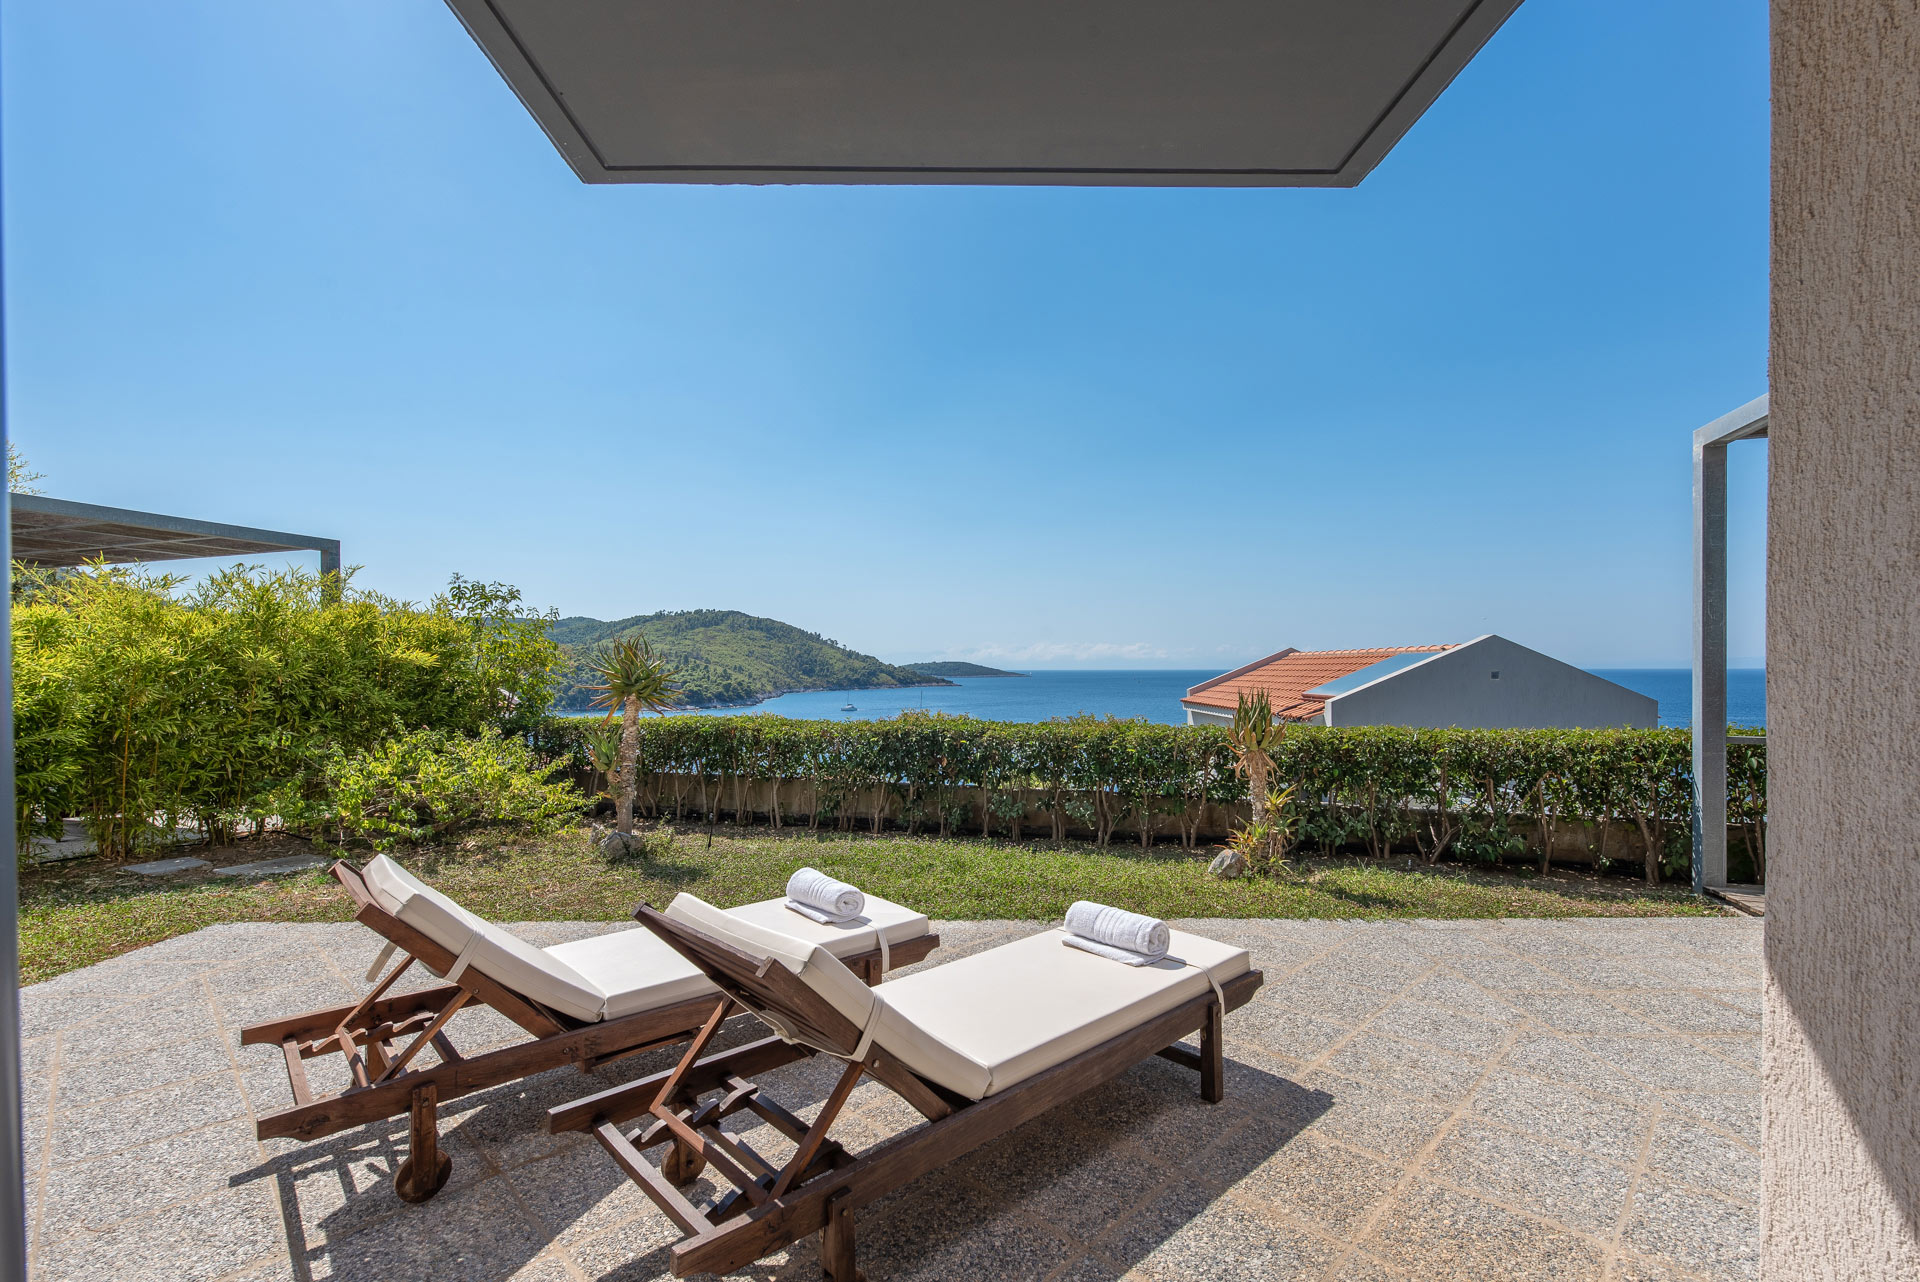 skopelos hotels adrina resort 1 beroom 2 level villa 710